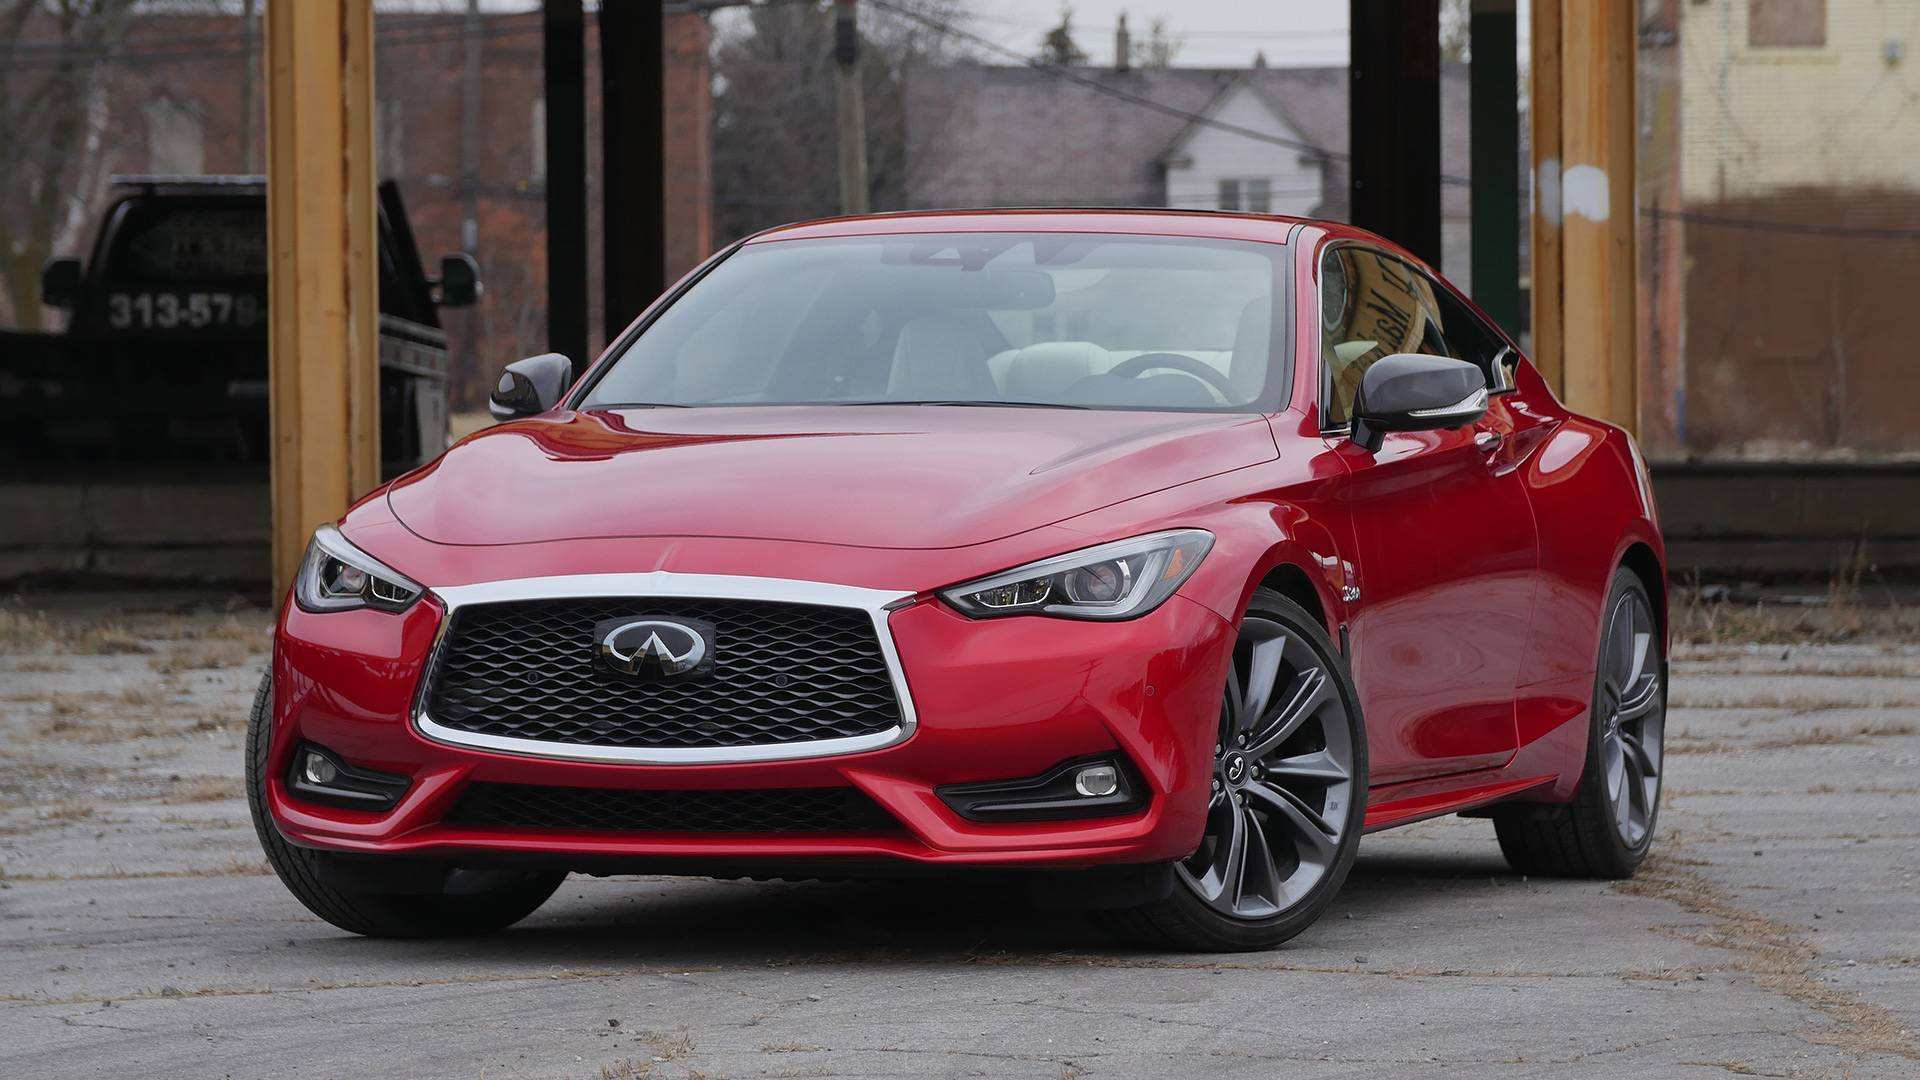 31 All New Infiniti Q50 2020 Redesign Prices